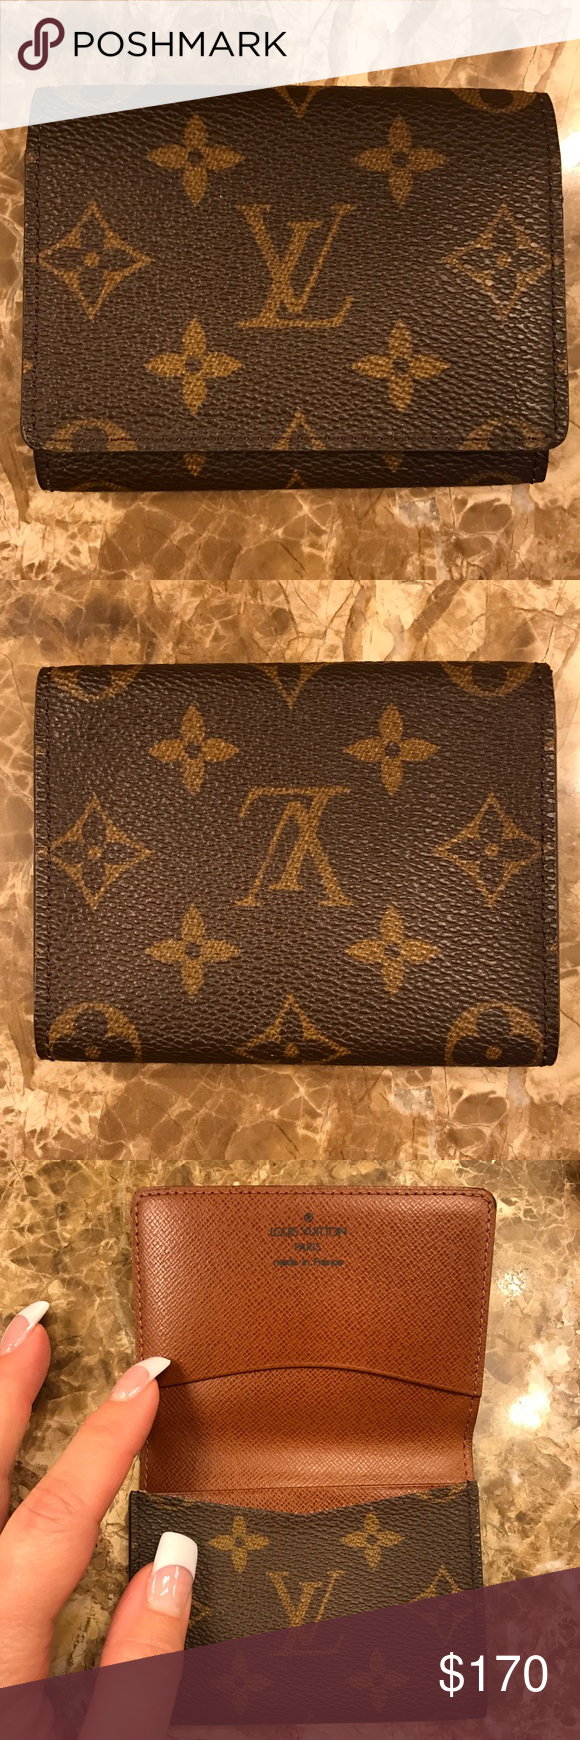 Auth louis vuitton business card holder this is an authentic auth louis vuitton business card holder this is an authentic vintage lv business card holder in colourmoves